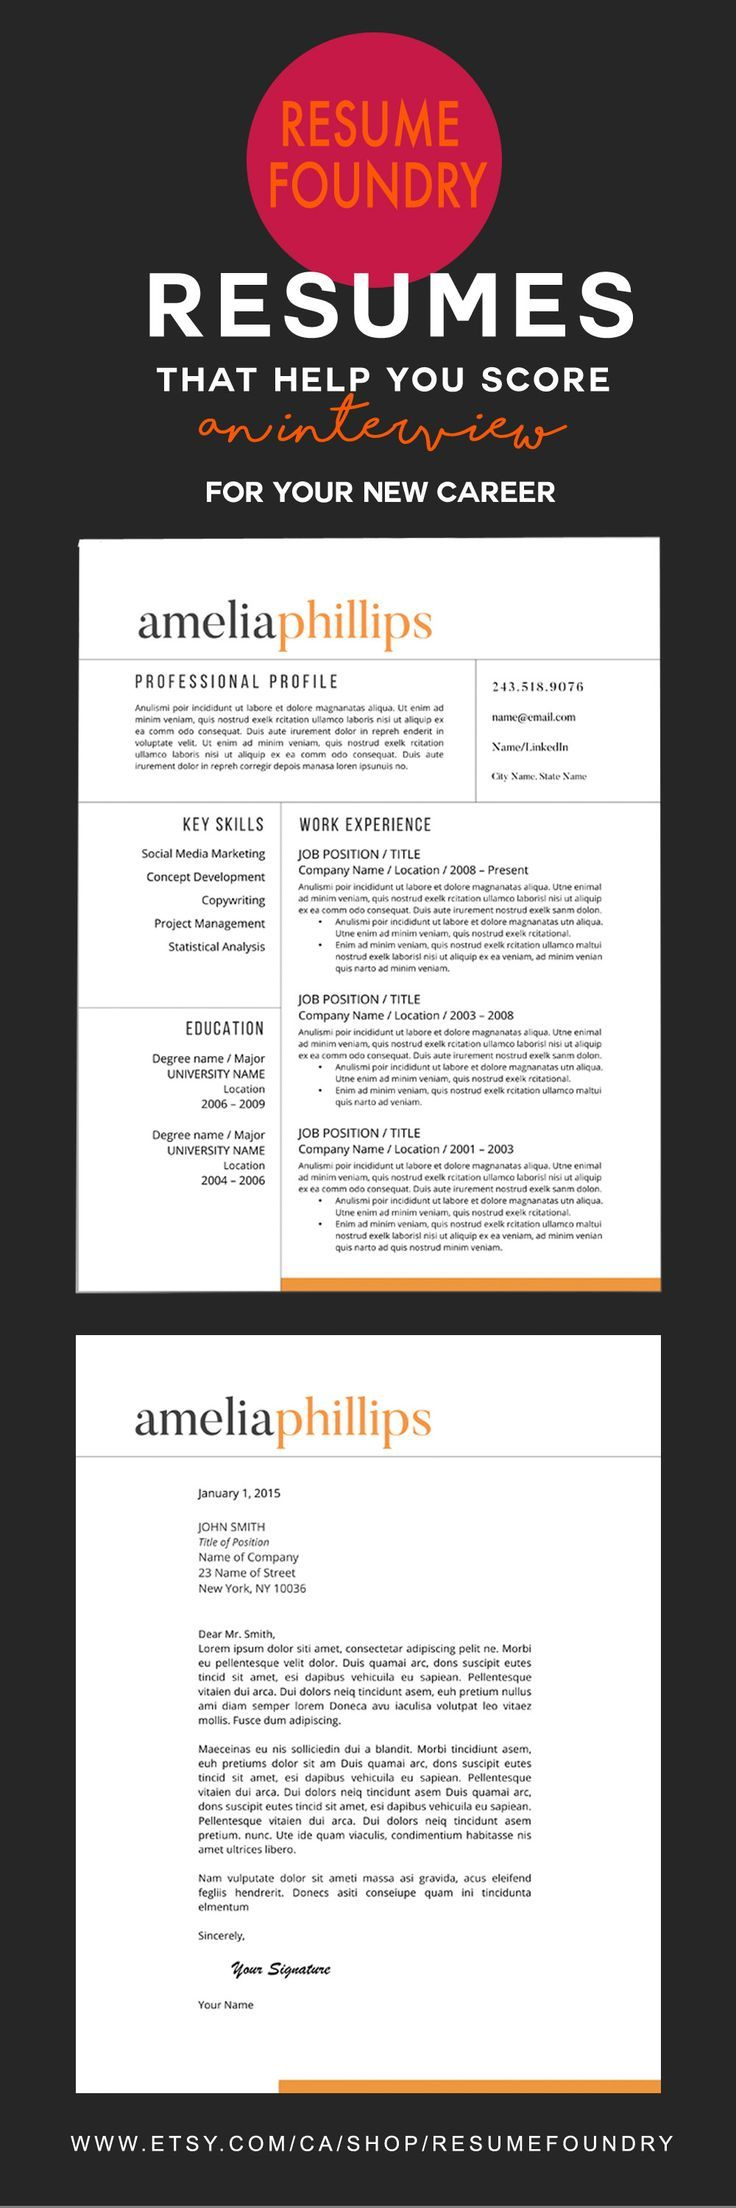 top ideas about modern resume templates my top 25 ideas about modern resume templates my resume important documents and cover letters